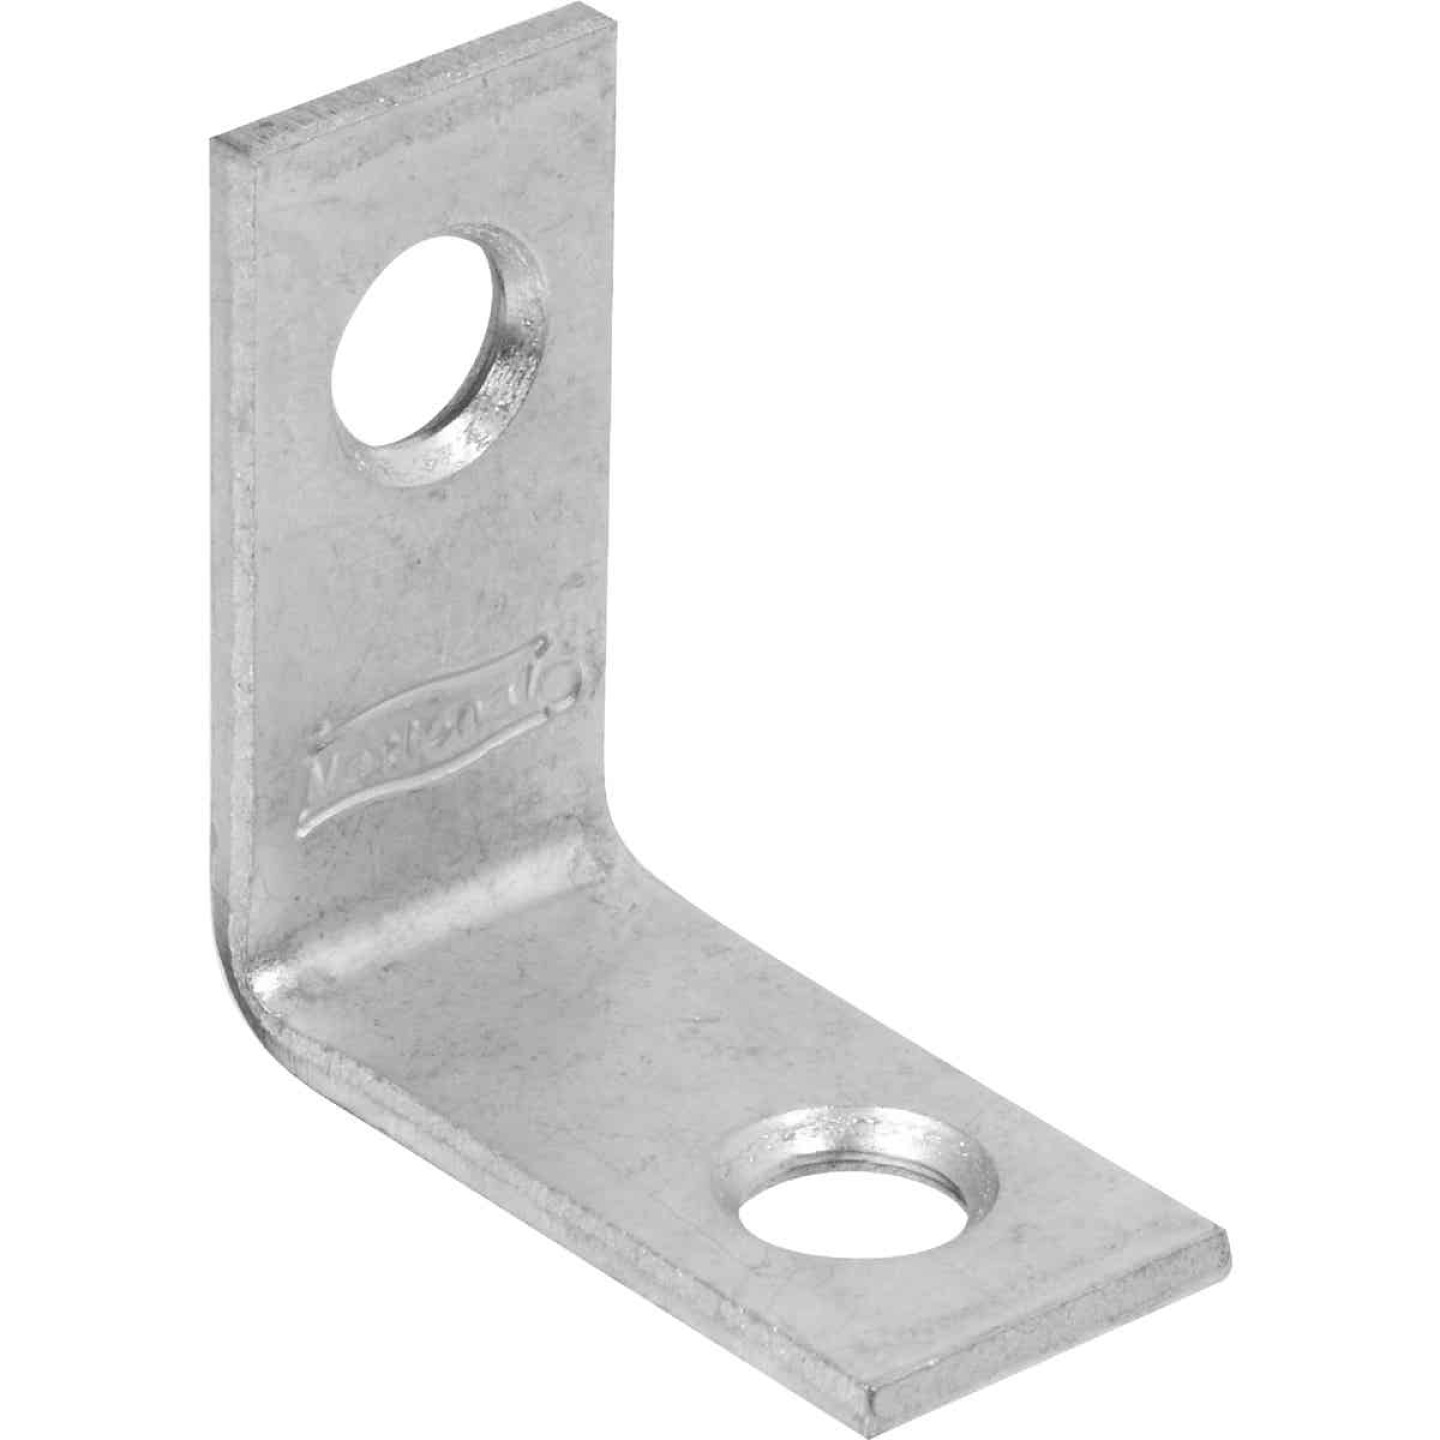 National Catalog 115 1 In. x 1/2 In. Zinc Corner Brace Image 1